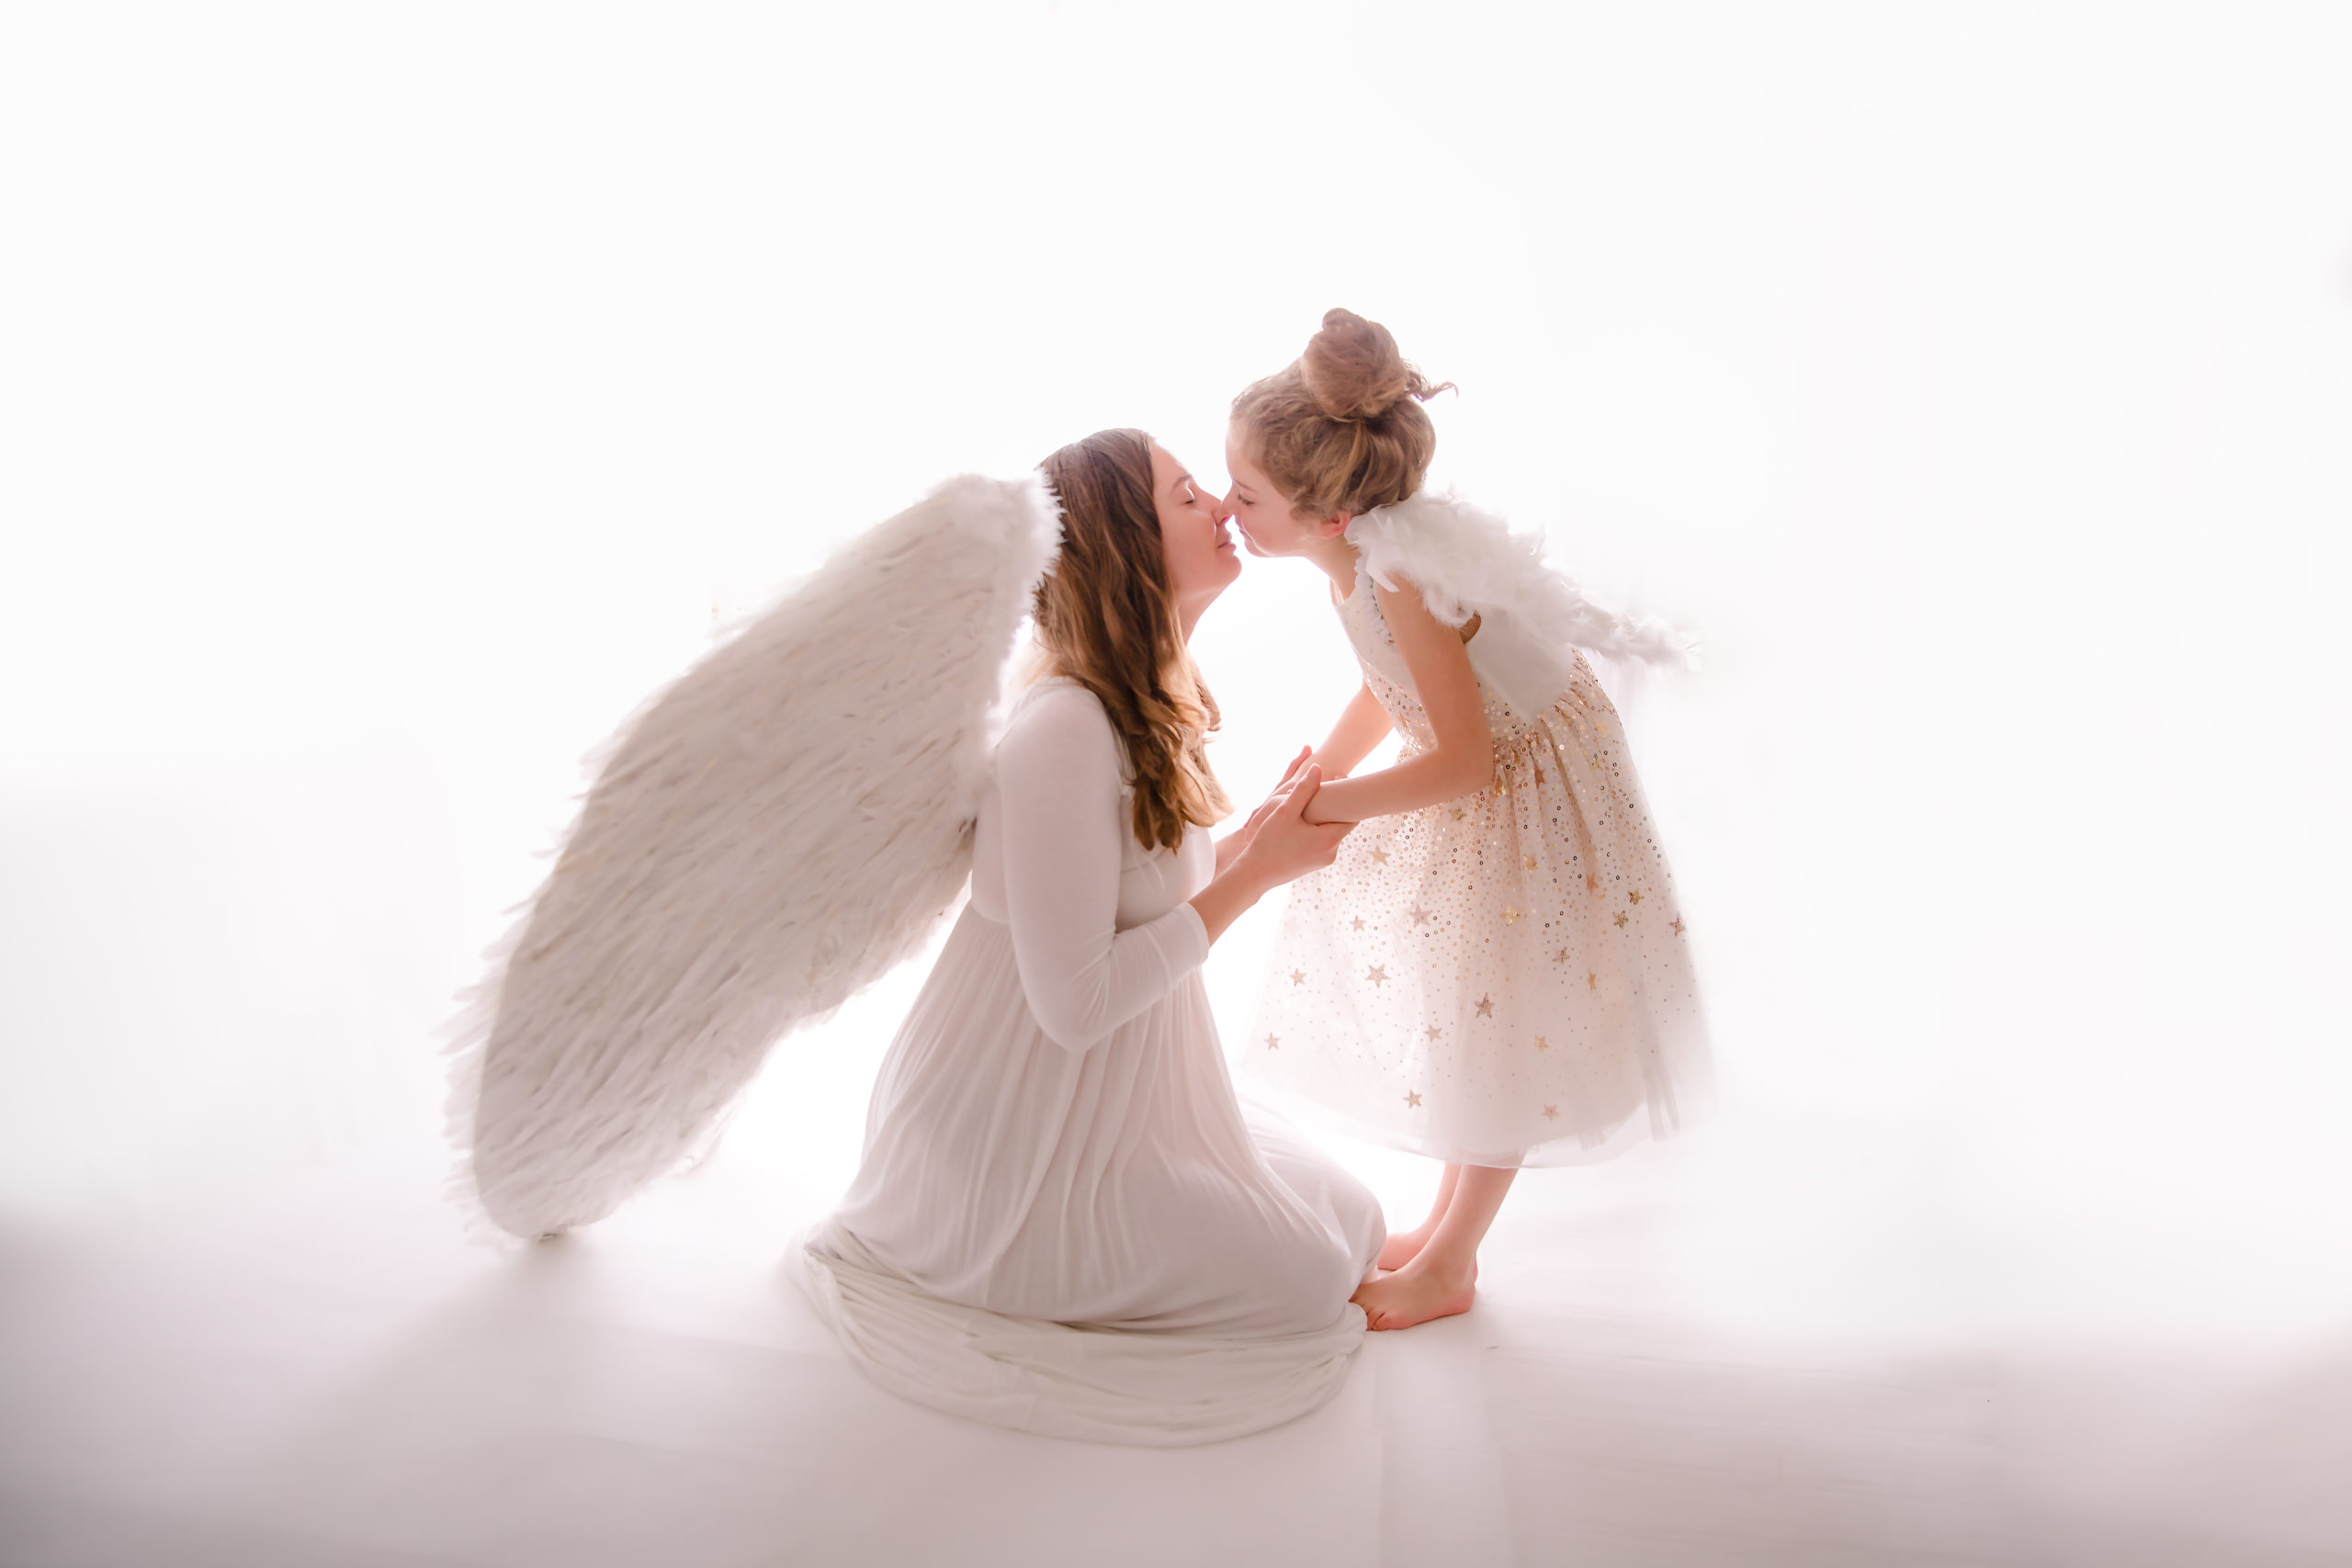 Child photography mother and daughter photography mum and daughter in white dresses tender kiss on a white background white on white angelic child portrait photographer studio family photographer in South West London Wimbledon SW19